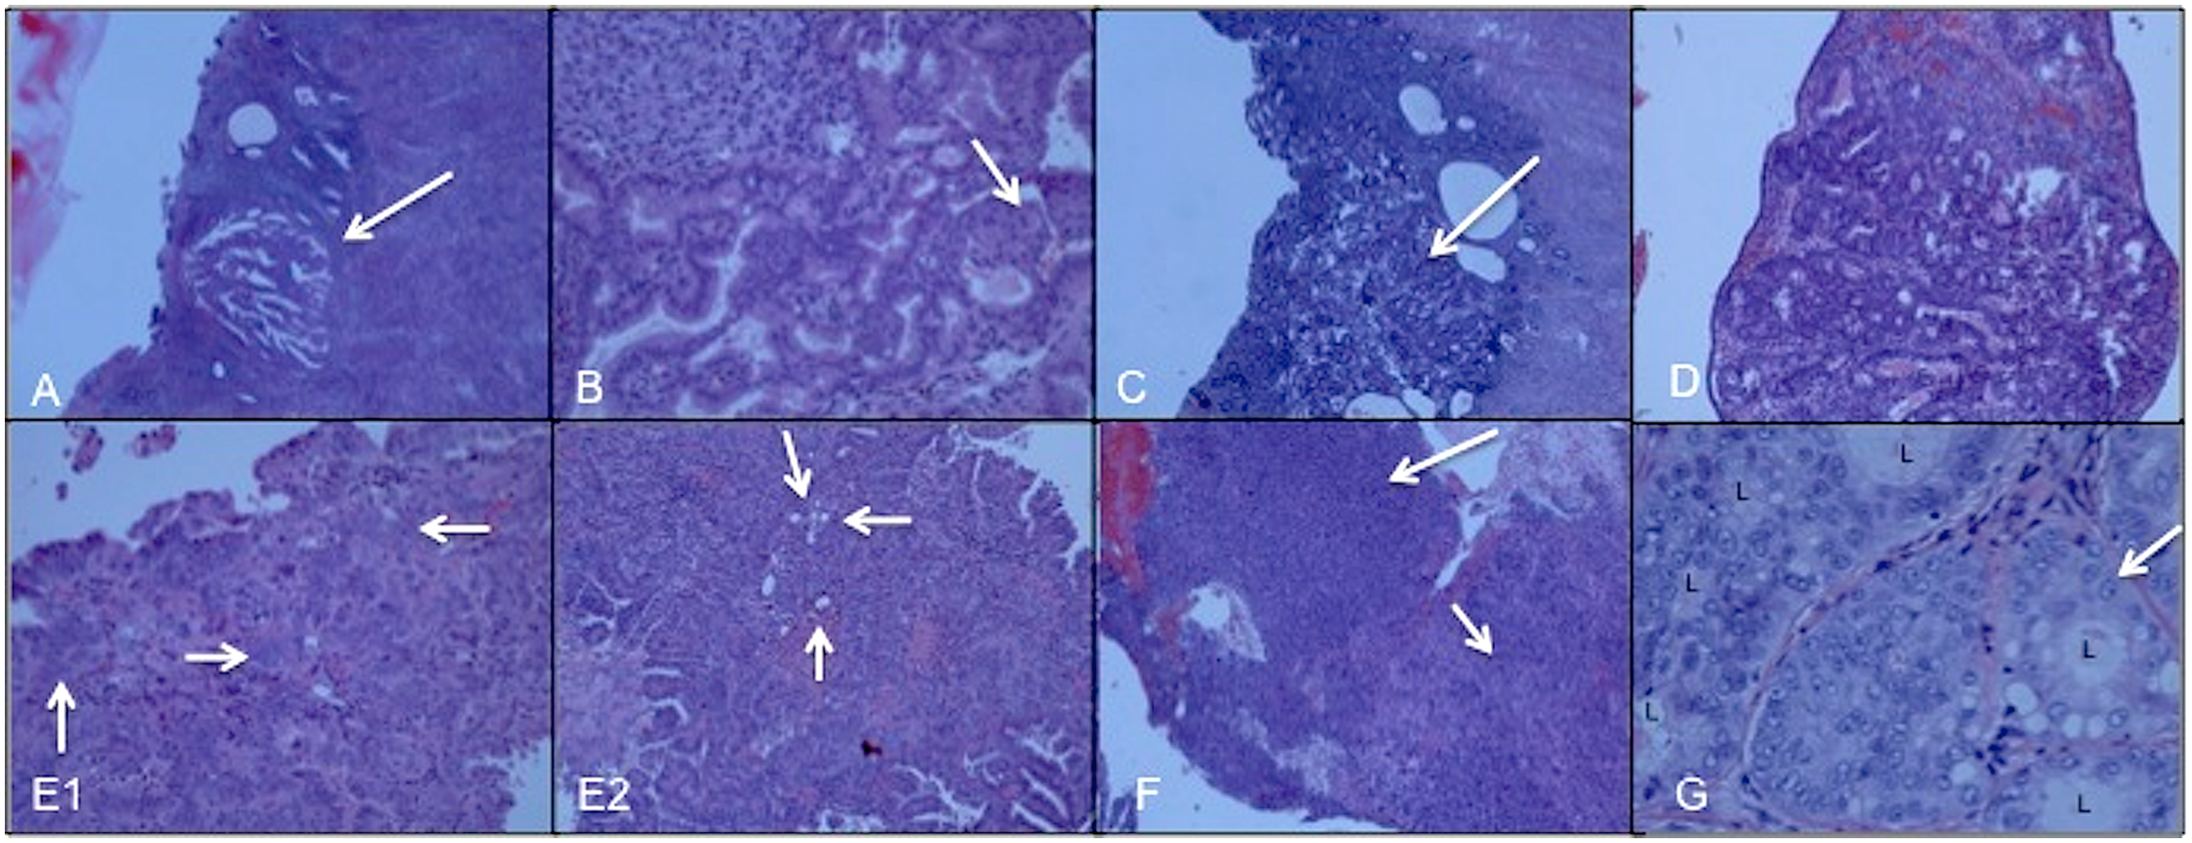 Microscopic views of hematoxylin-eosin stained sections of all seven uterine cancer specimens diagnosed by classic histopathology.